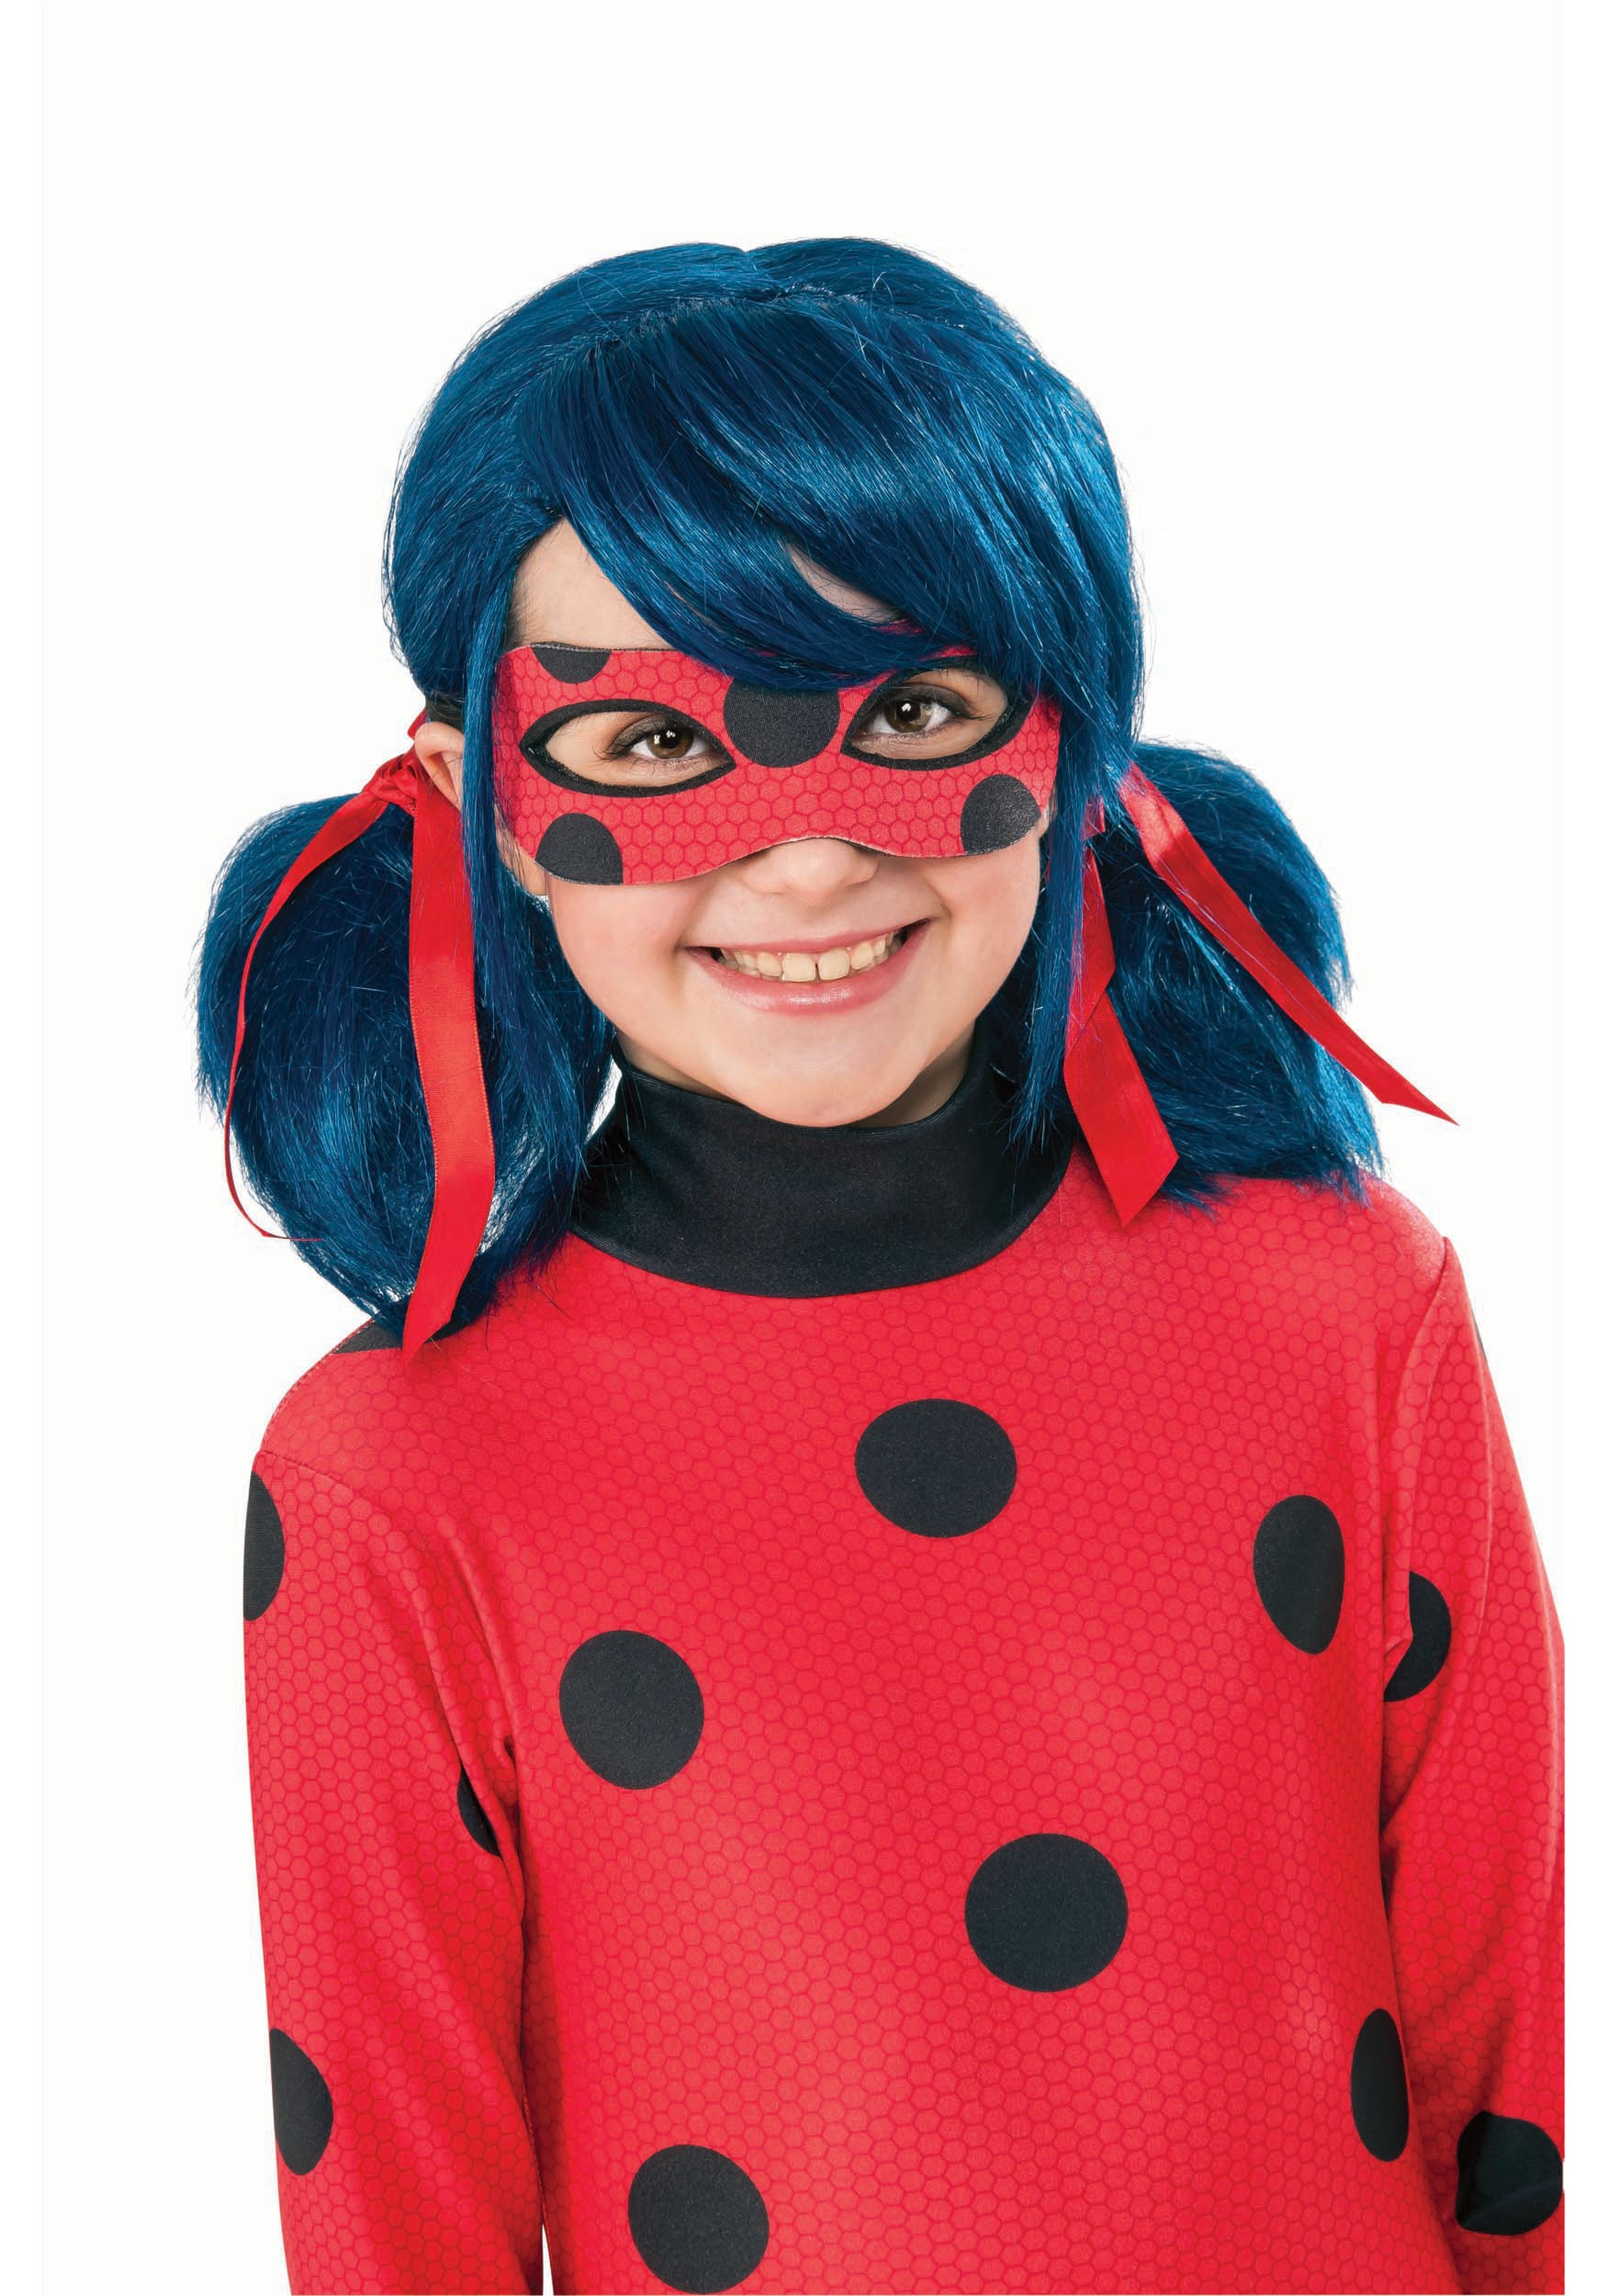 Miraculous Ladybug Wig For Girls